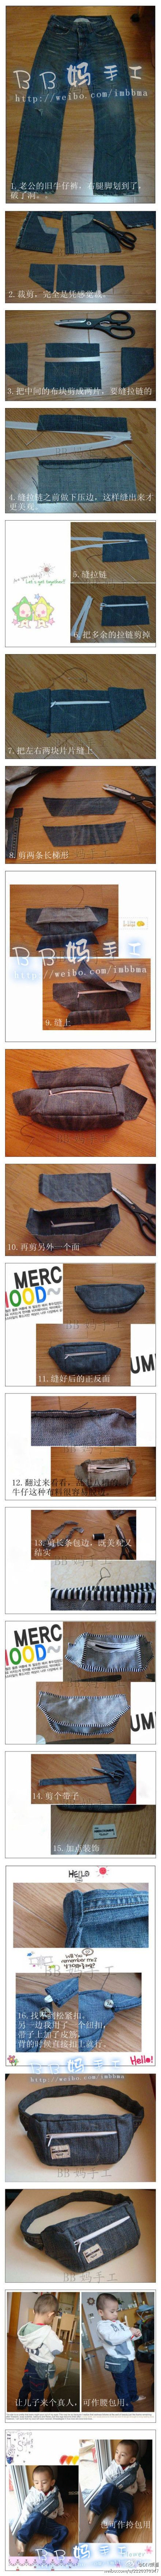 DIY denim fanny pack - photo tutorial in Chinese.  @Megan Maxwell Cunningham 's summer dream